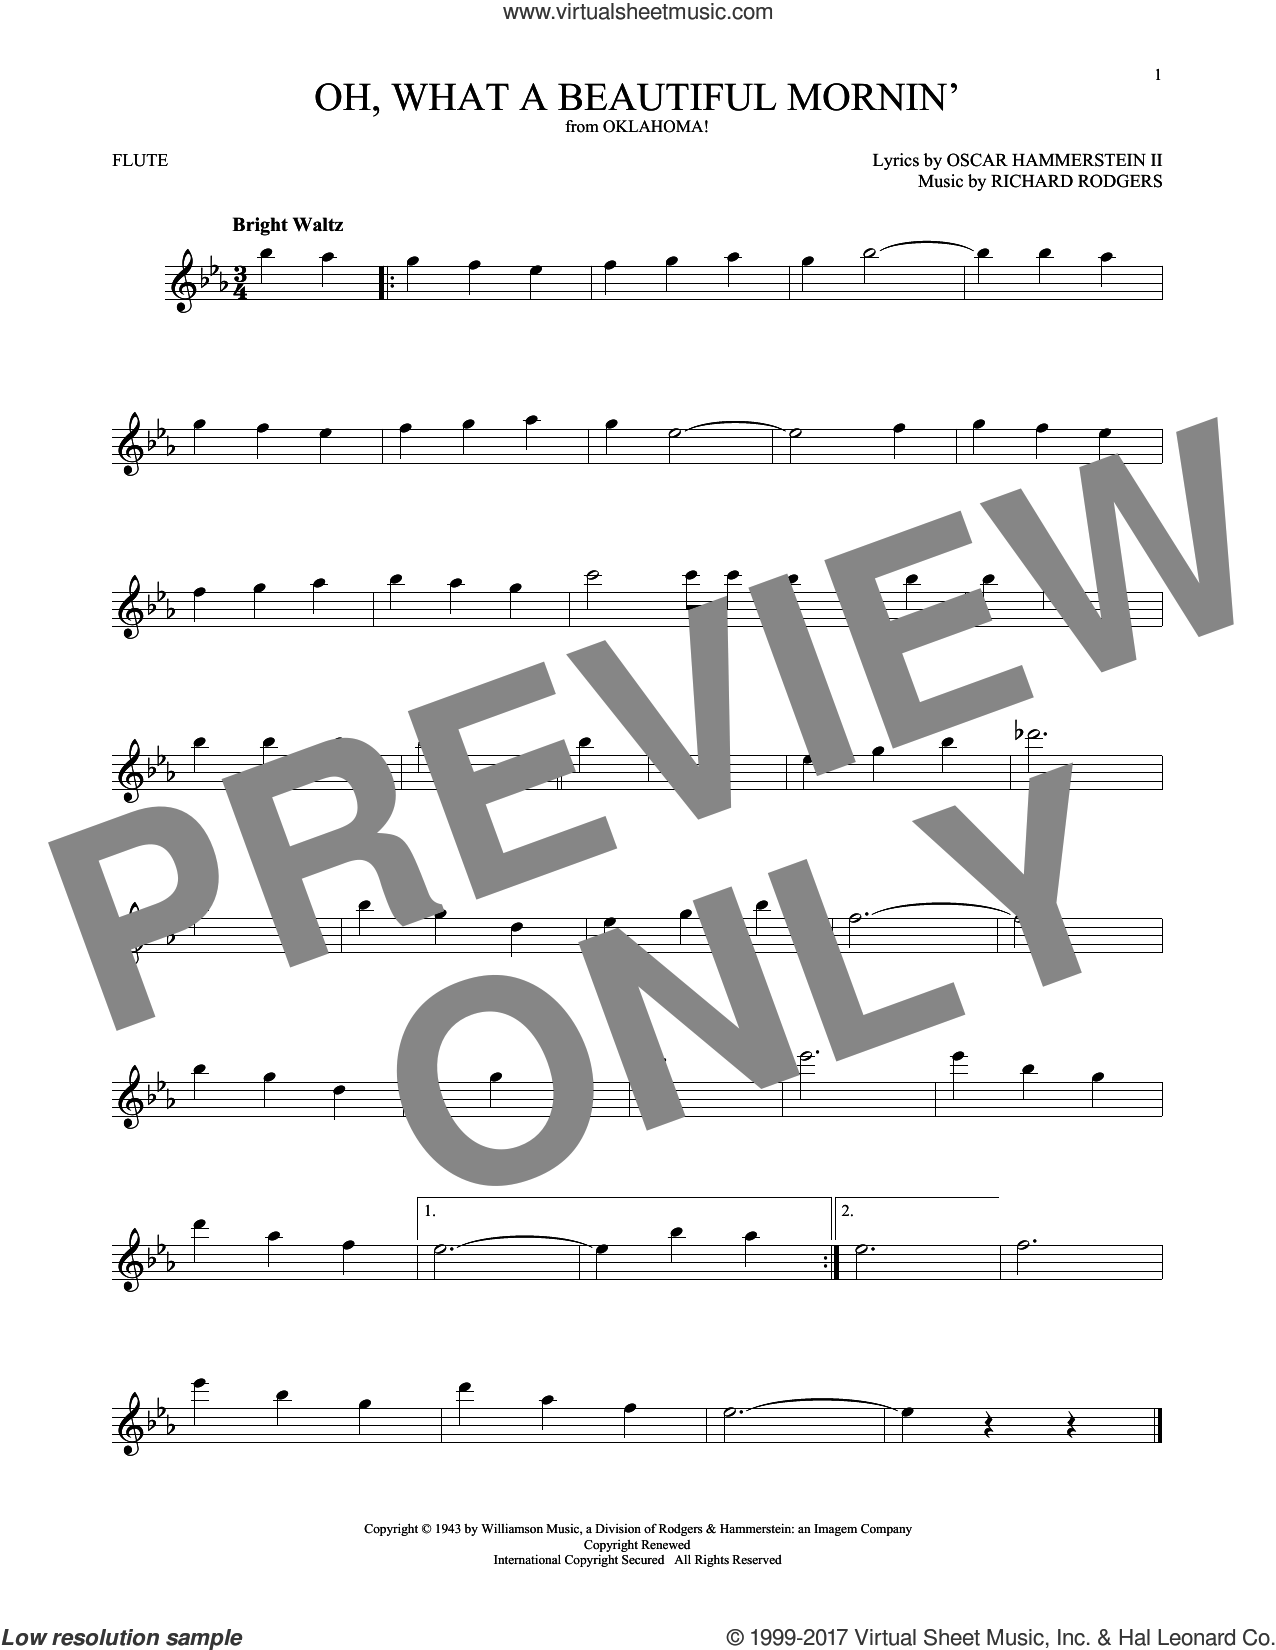 Oh, What A Beautiful Mornin' sheet music for flute solo by Rodgers & Hammerstein, Oscar II Hammerstein and Richard Rodgers, intermediate. Score Image Preview.